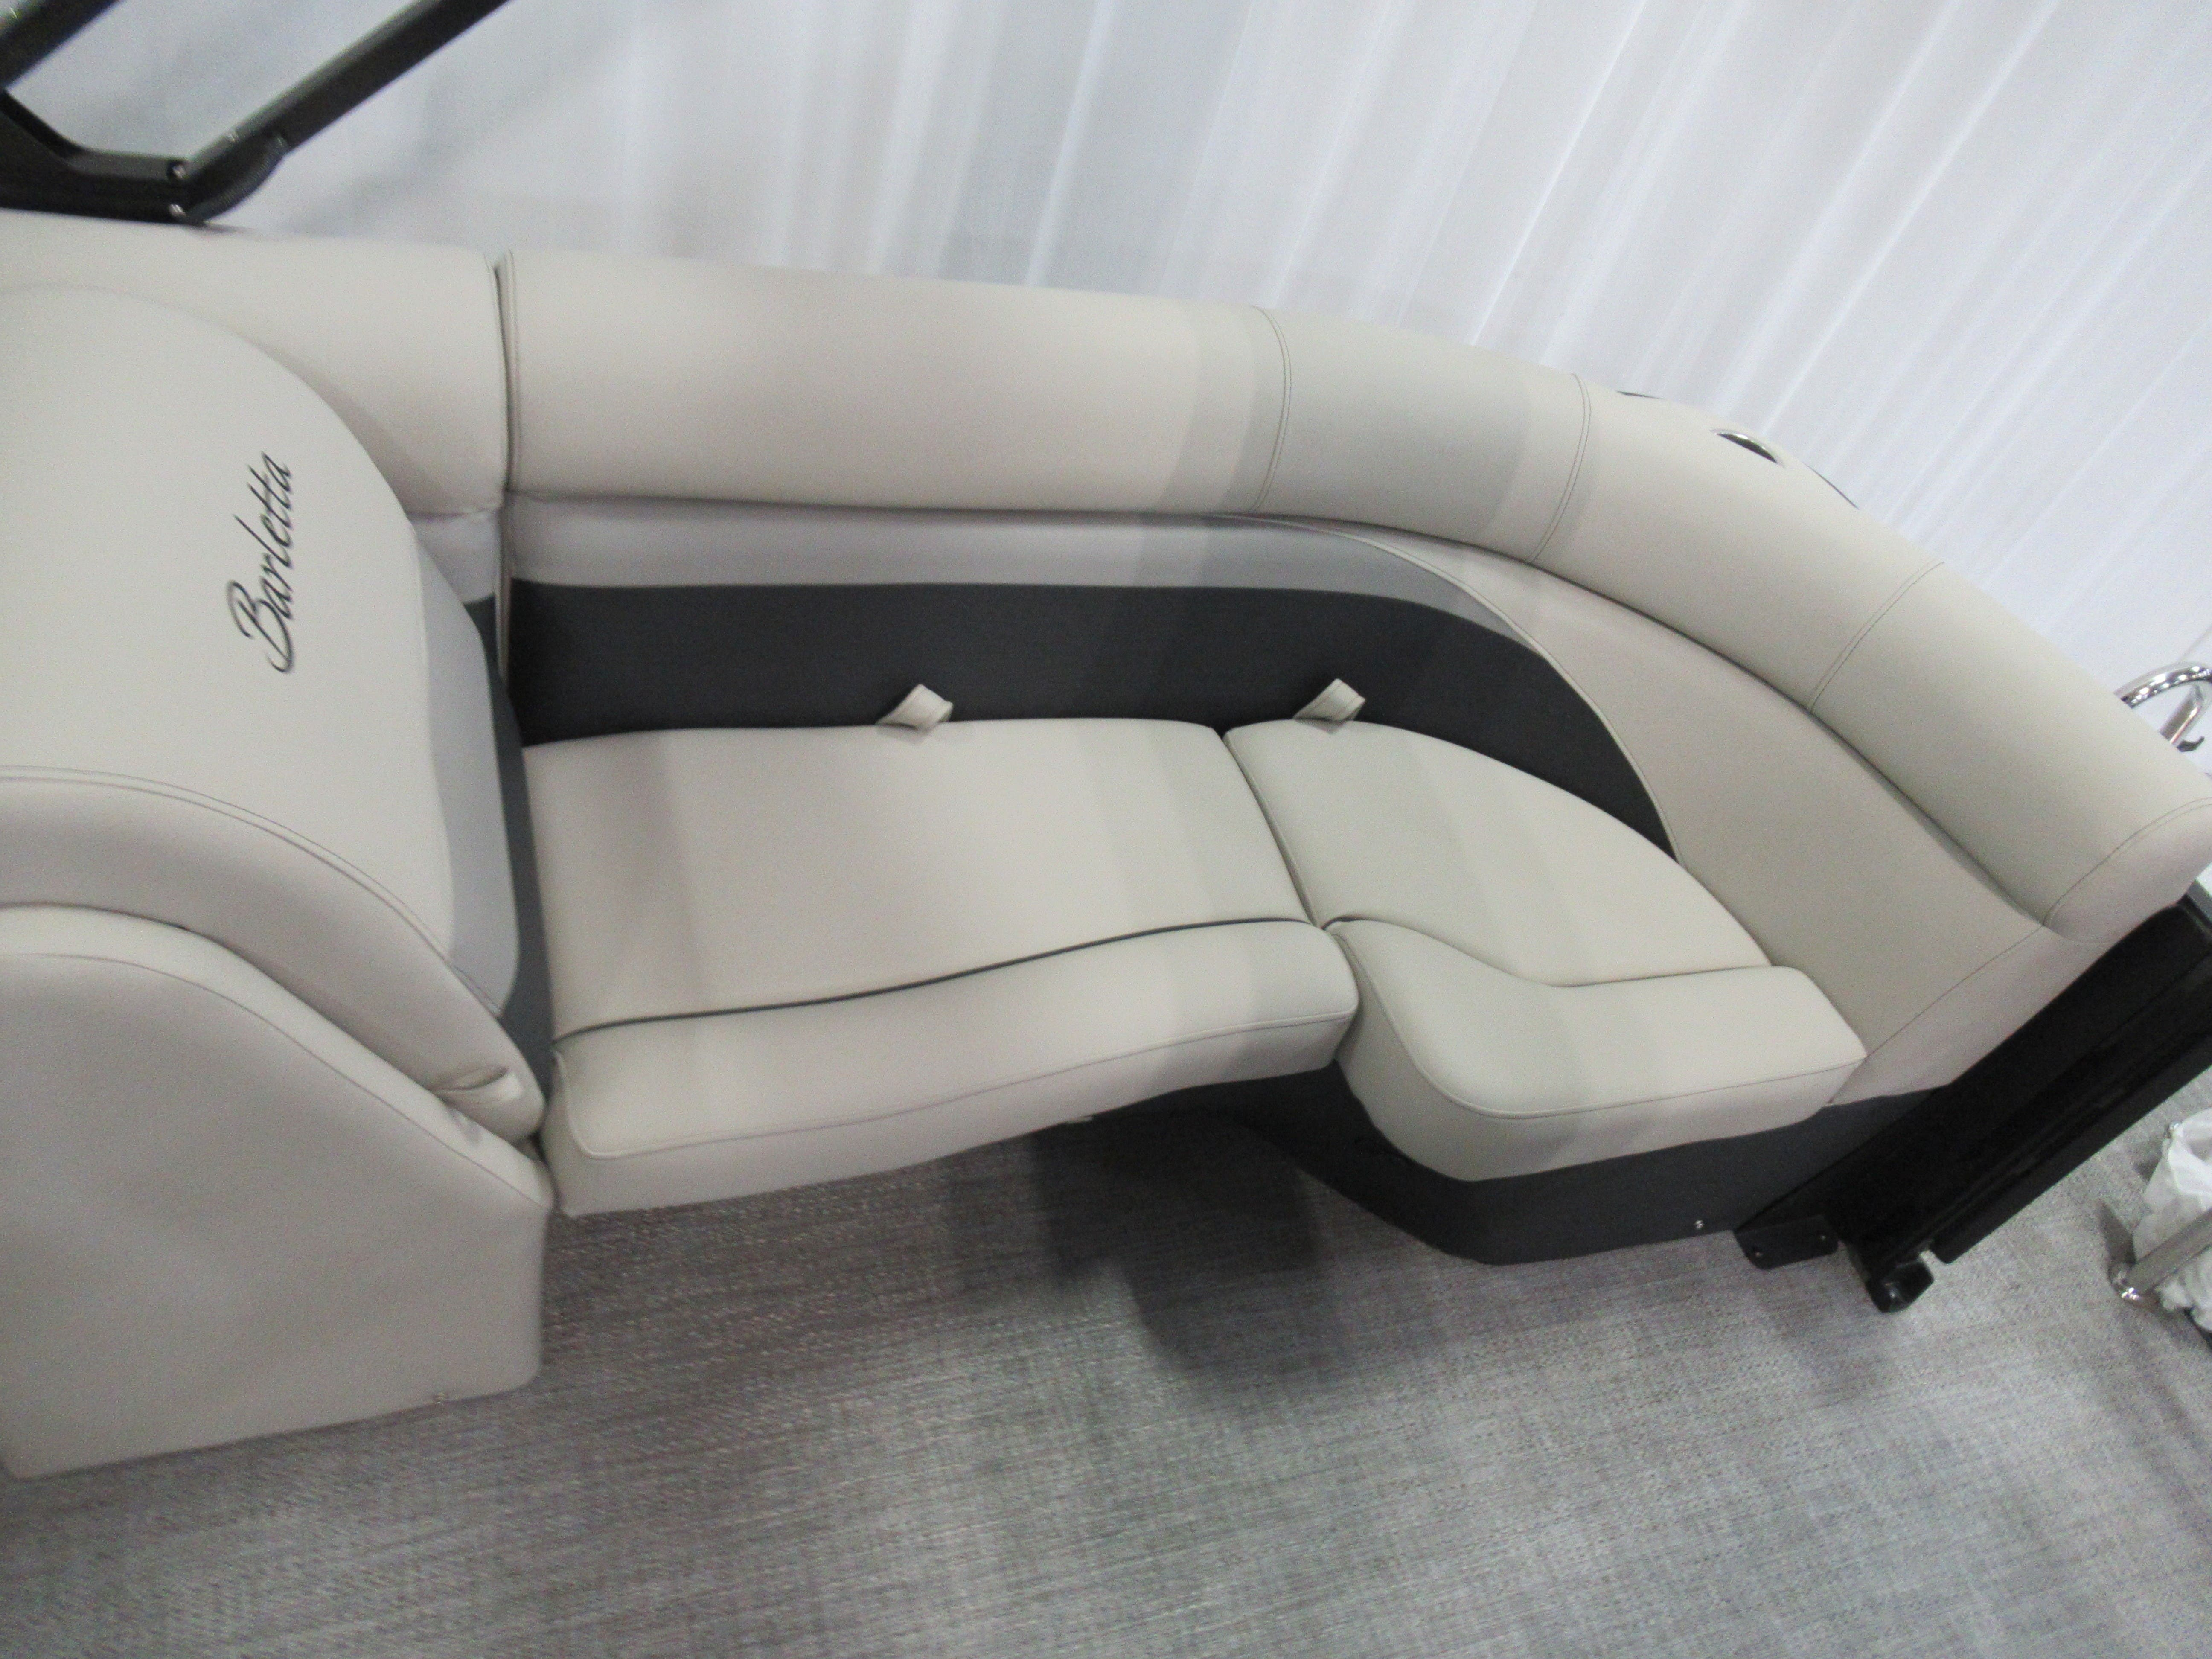 2021 Barletta boat for sale, model of the boat is C22qc & Image # 10 of 11